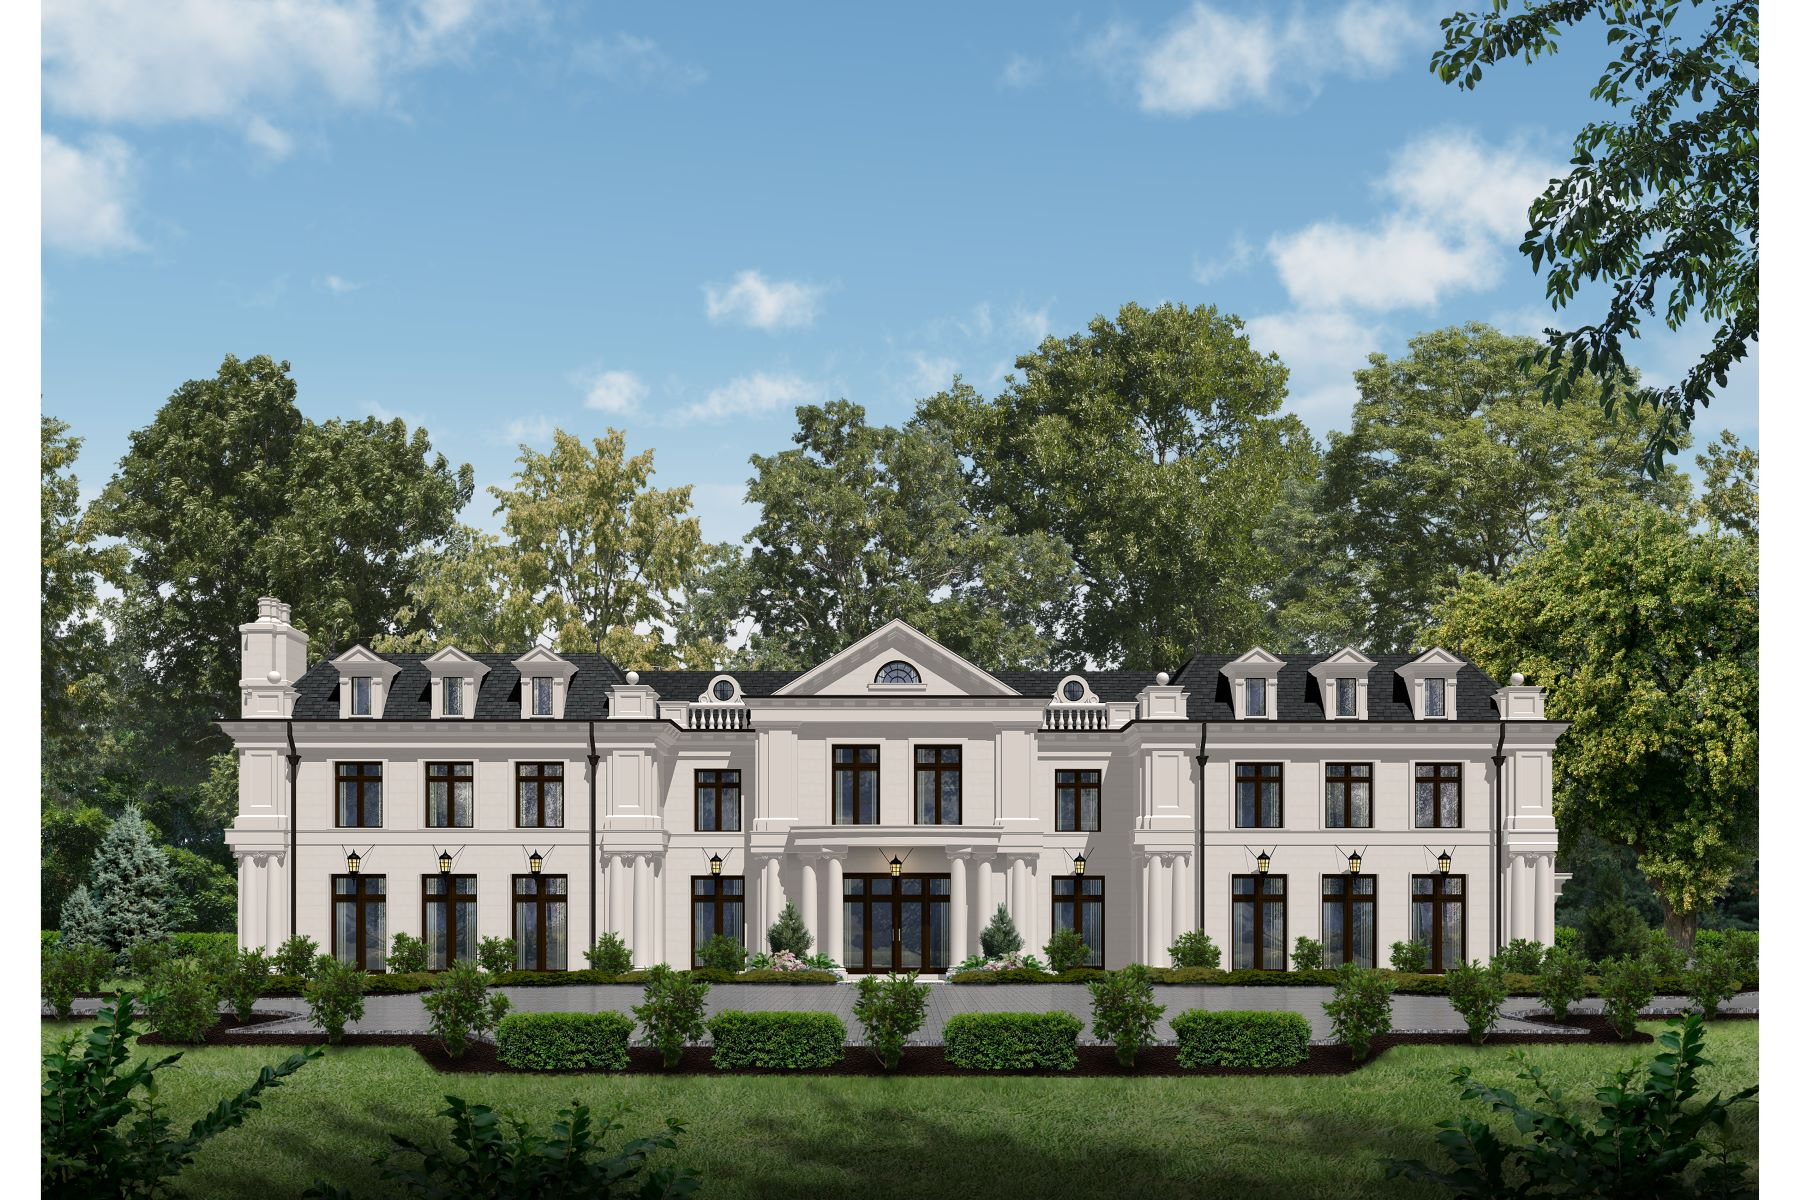 Single Family Home for Sale at Opulent Beverly Hills Inspired Estate 23 Stone Tower Dr. Alpine, New Jersey 07620 United States